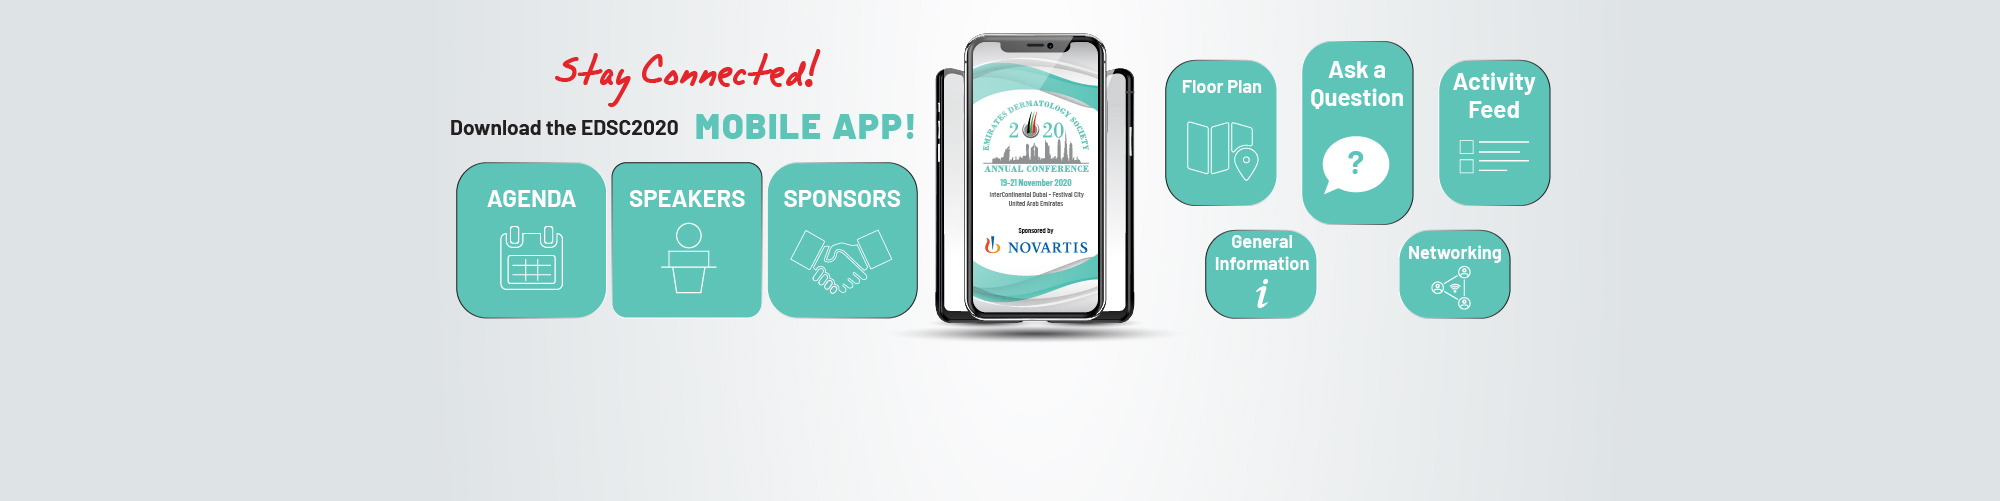 Download the EDSC2020 Mobile App!